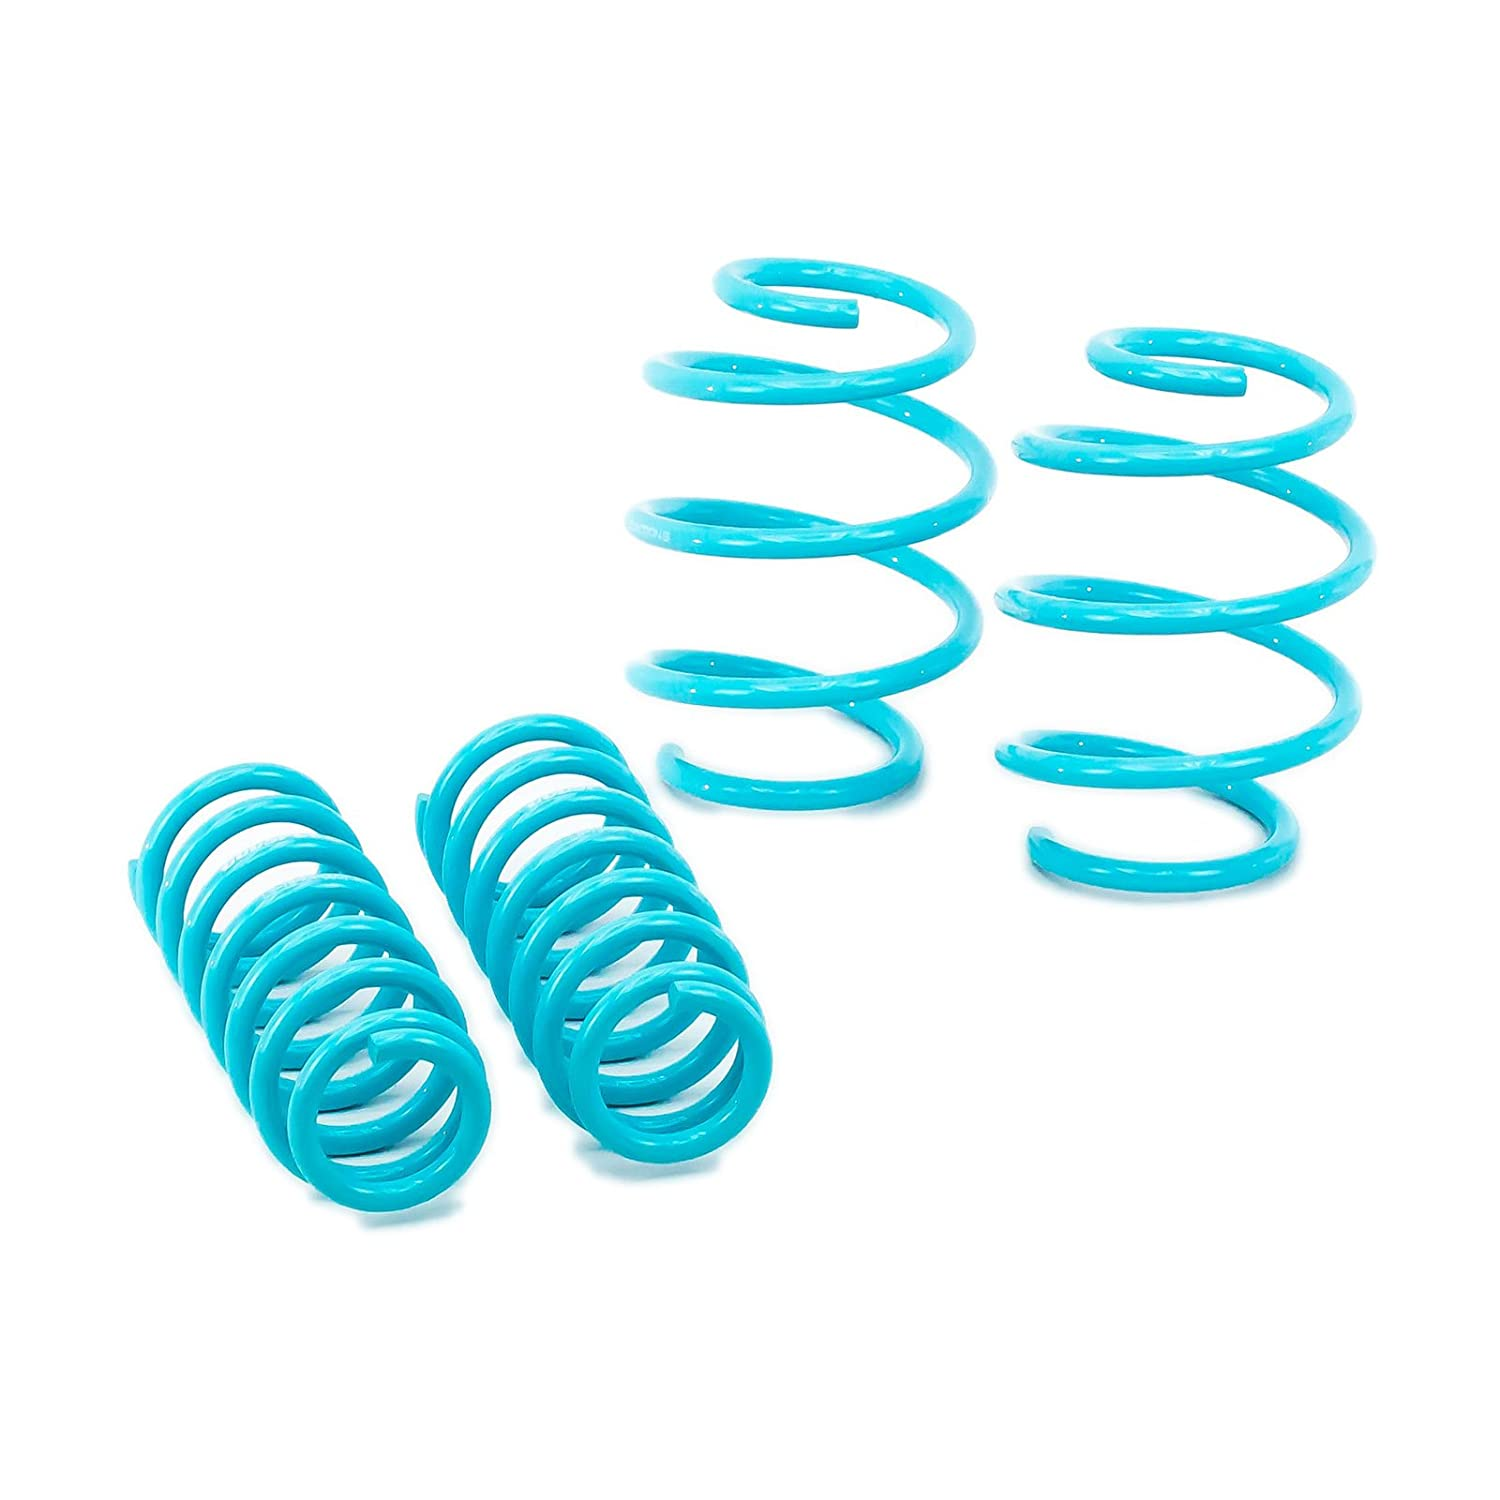 Godspeed(LS-TS-KA-0001) Traction-S Performance Lowering Springs, Reduce Body Roll, Improve Steering Response, Set of 4